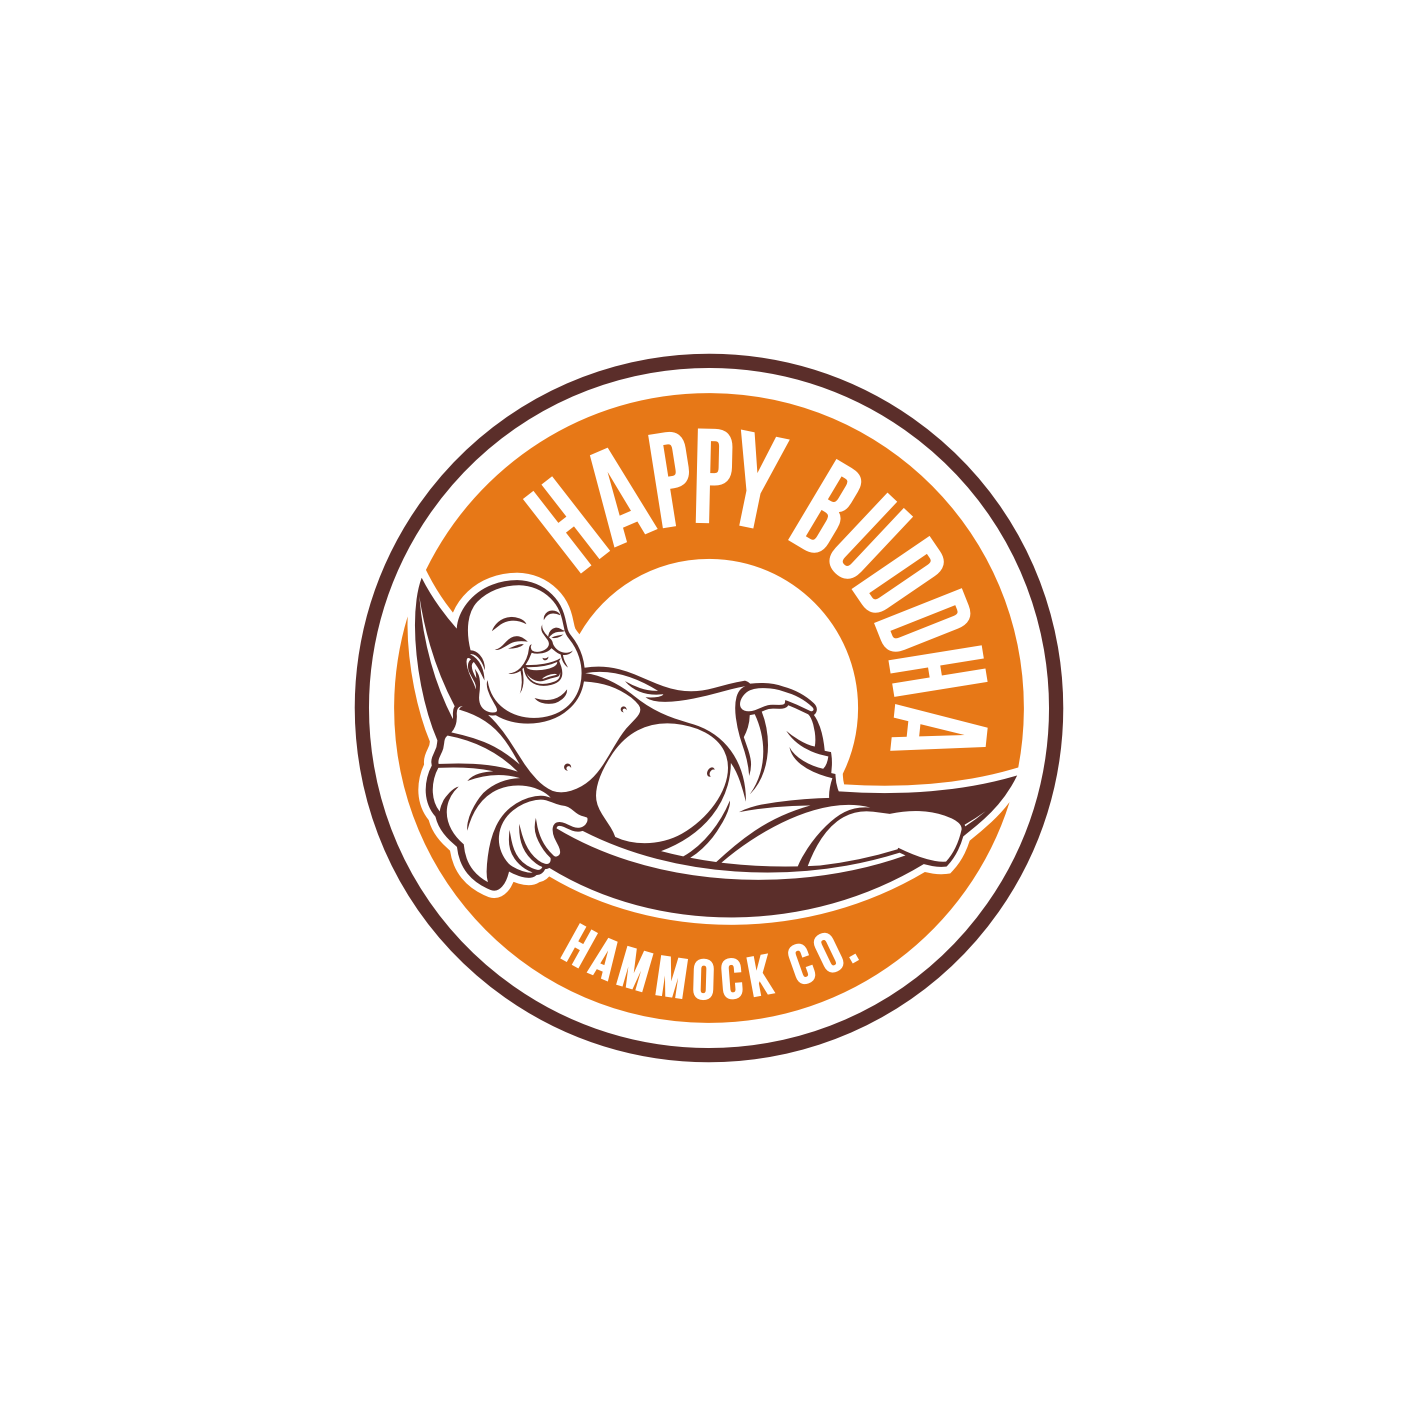 Design a fun and relaxing logo for Happy Buddha Hammock Co.